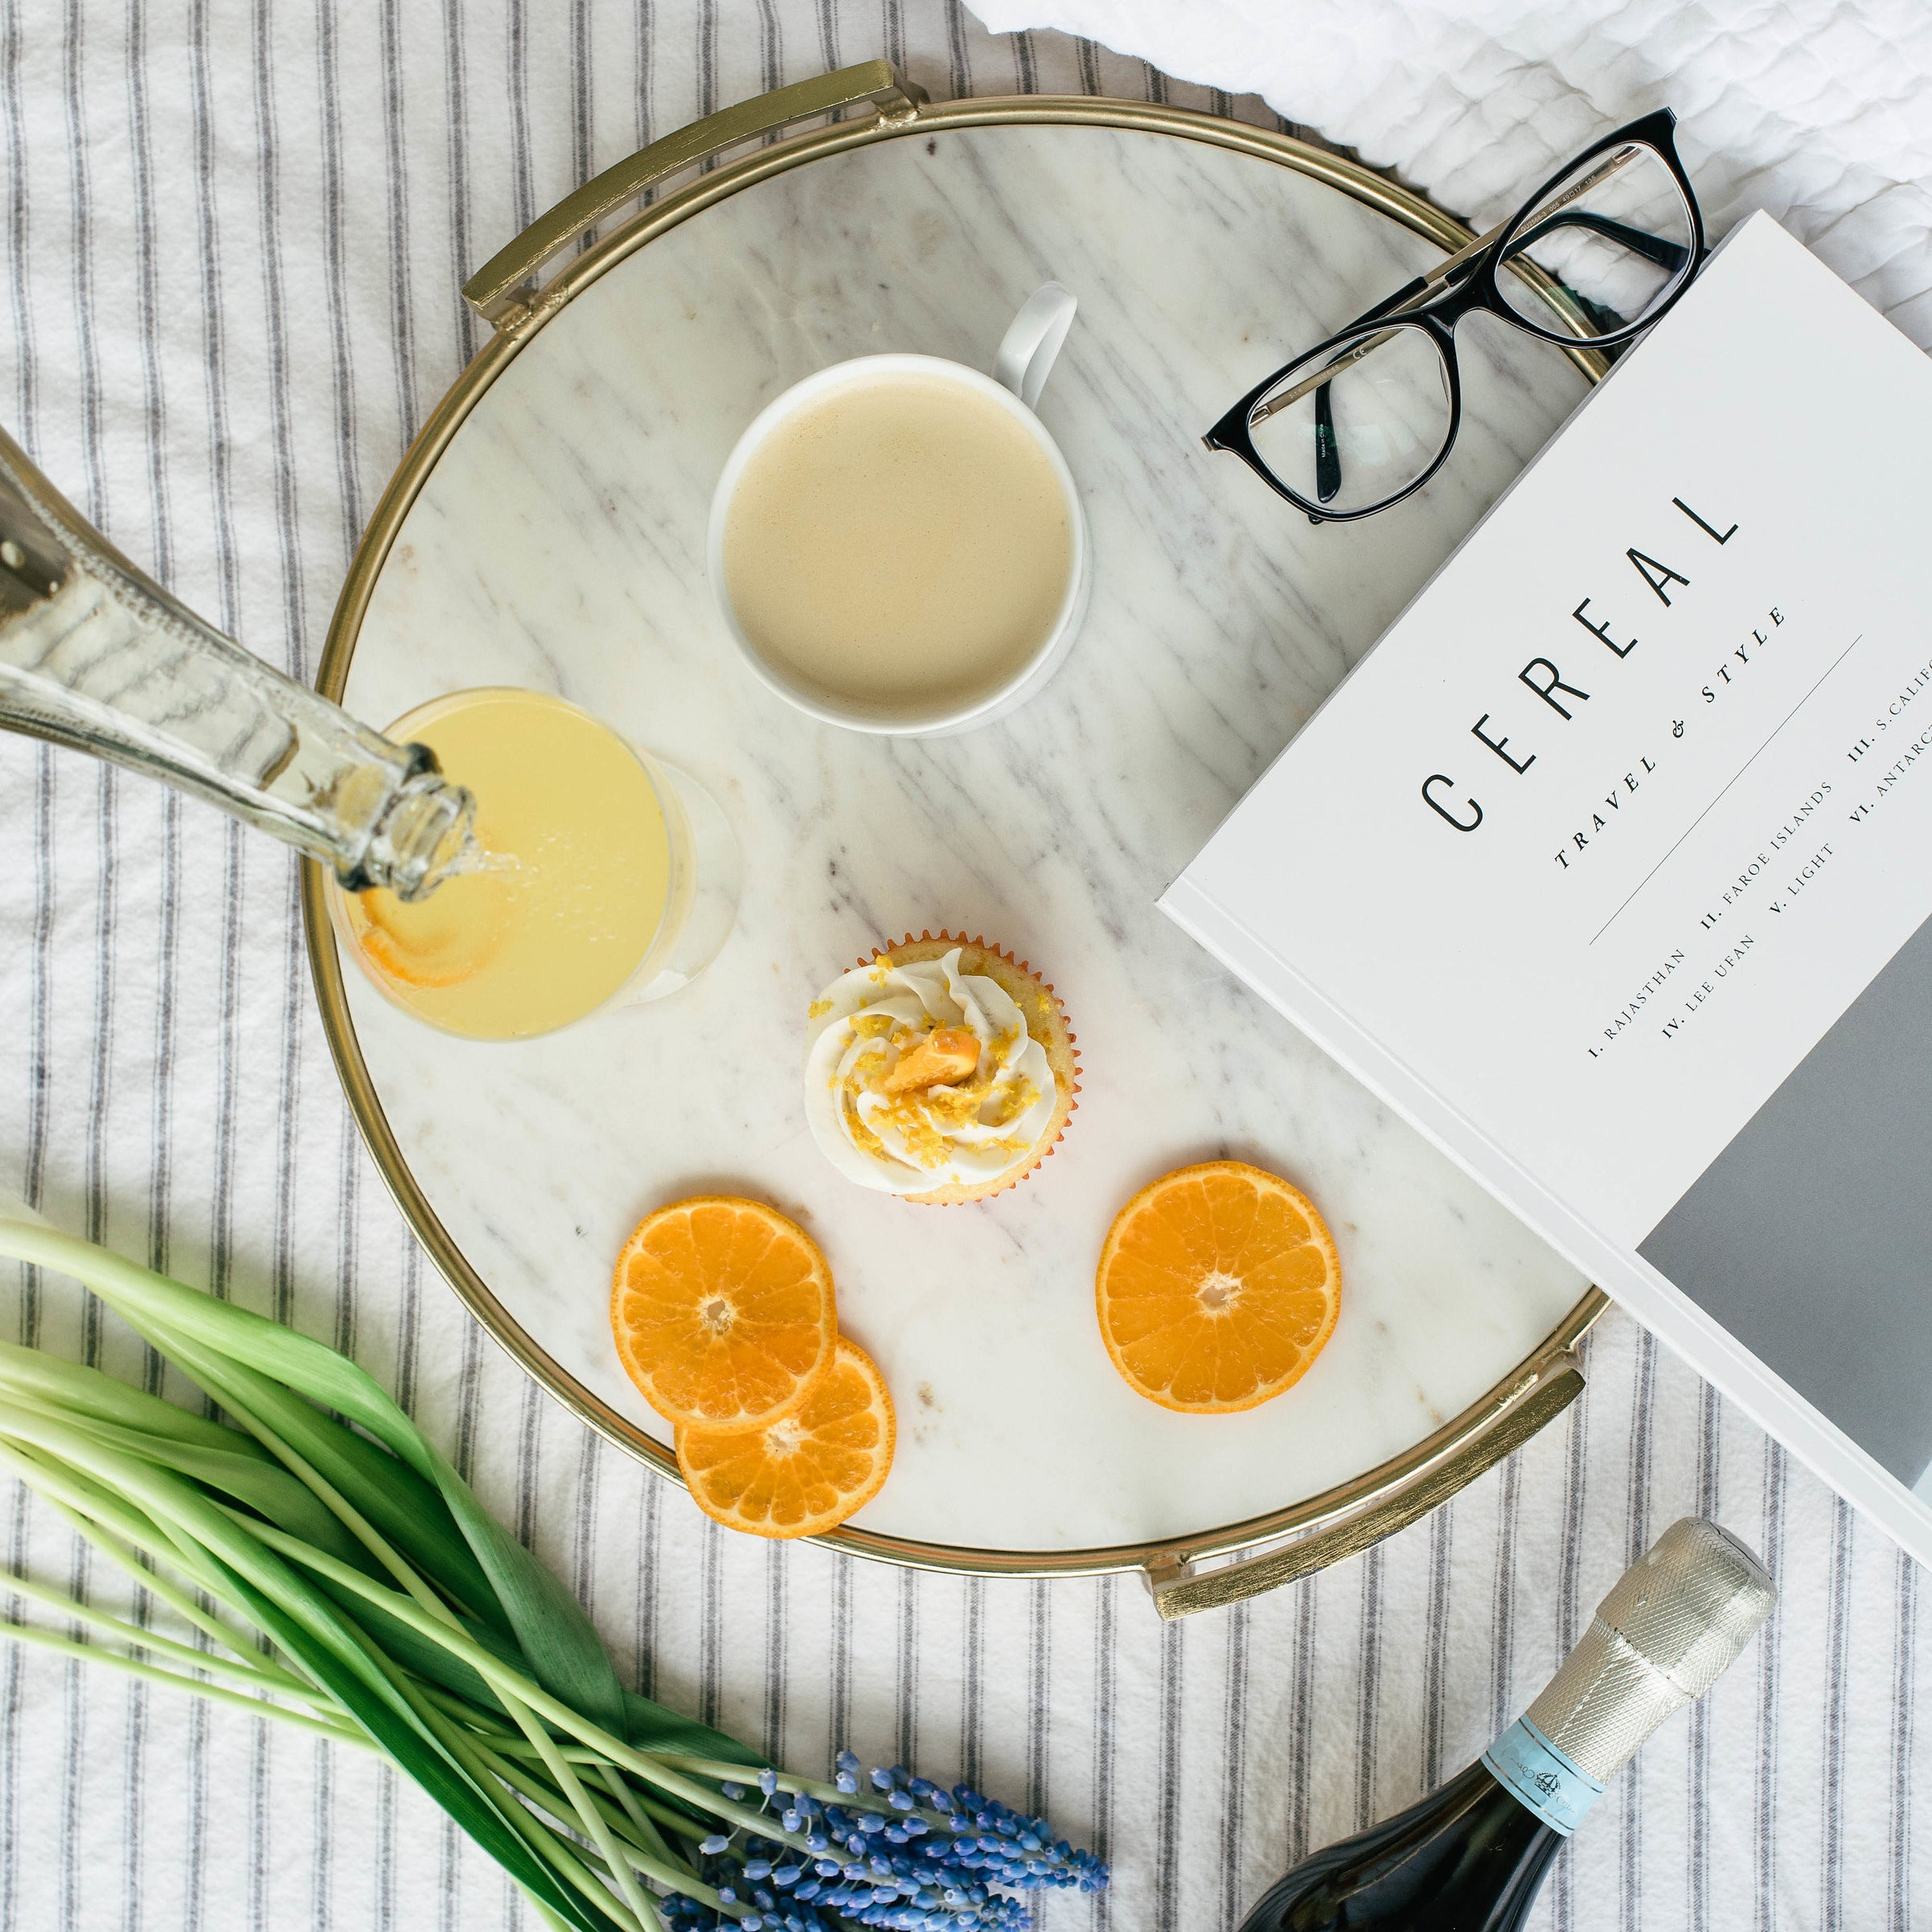 Image from above of a Miss Jones Baking Co Mimosa Cupcake on a platter next to orange slices, a mimosa, a cup of tea, reading glasses, a magazine, lavender and a bottle of champagne